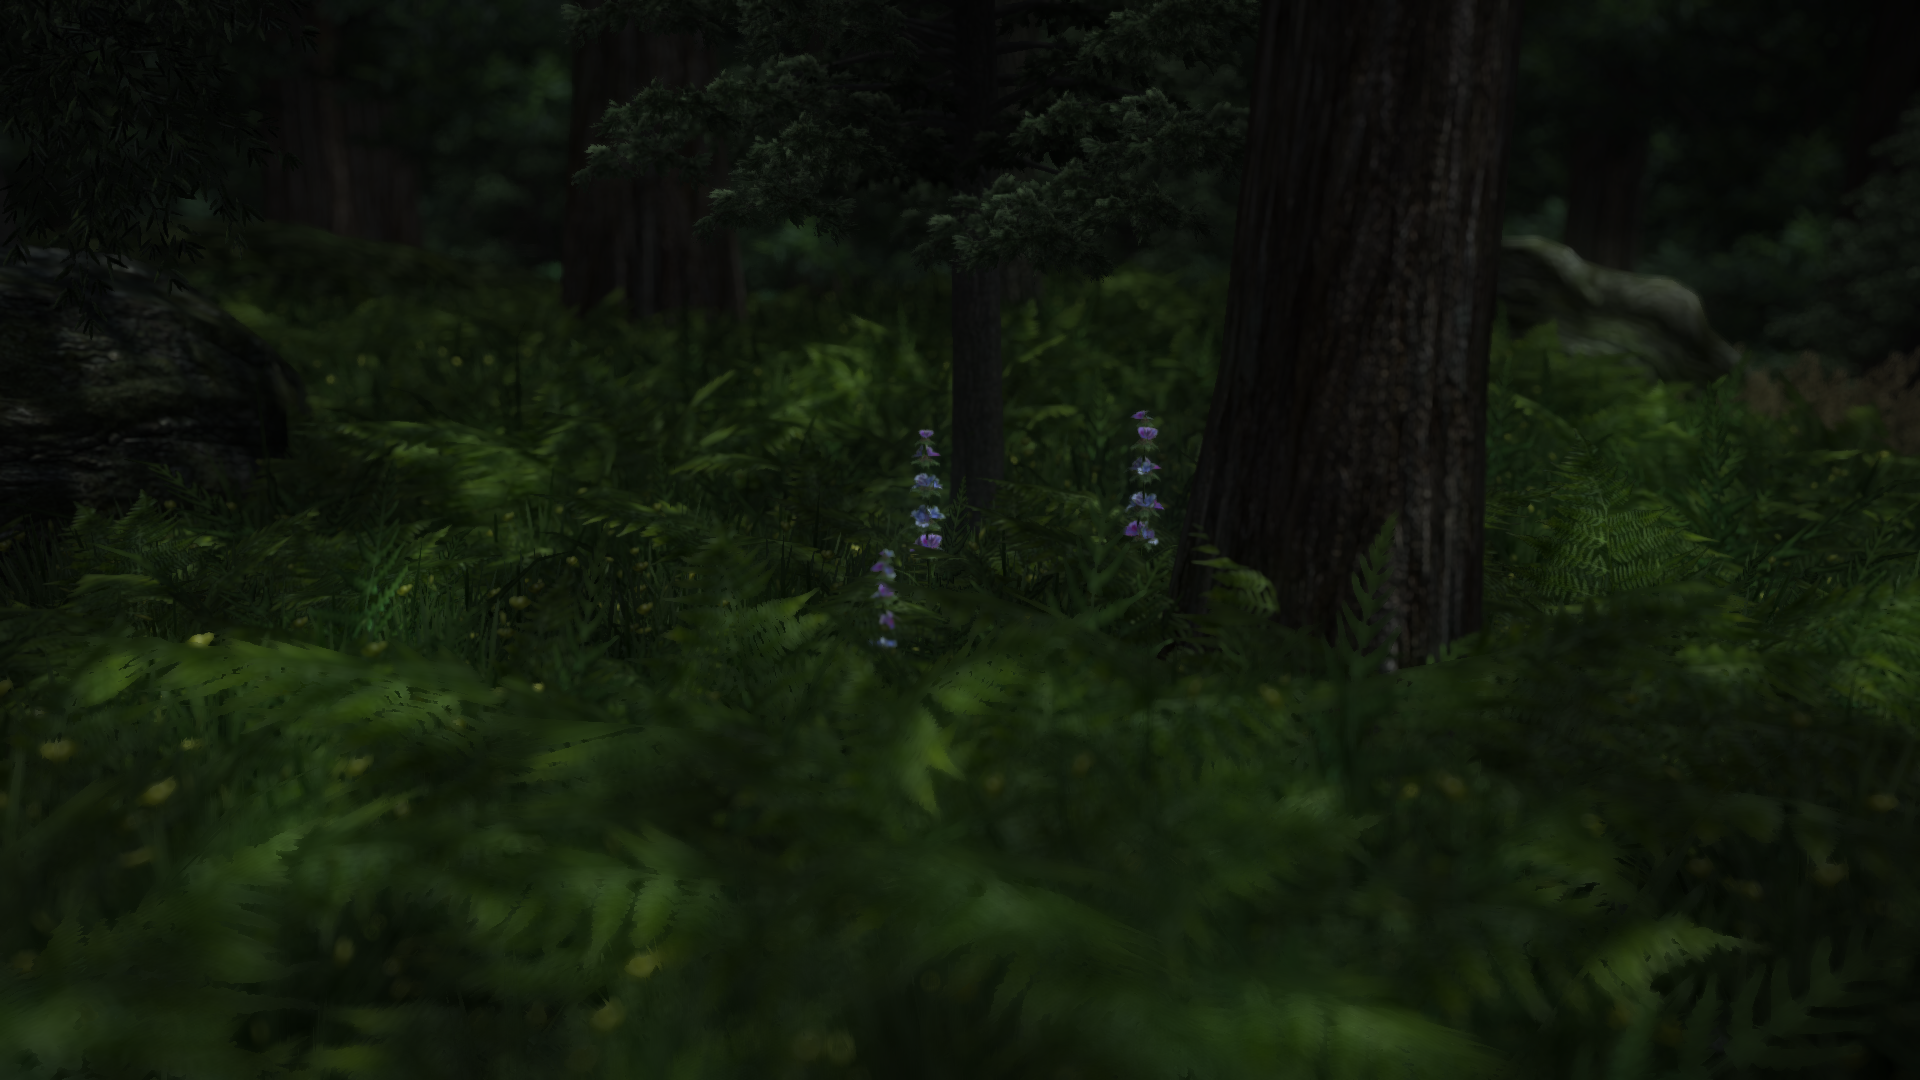 In the heart of the wood